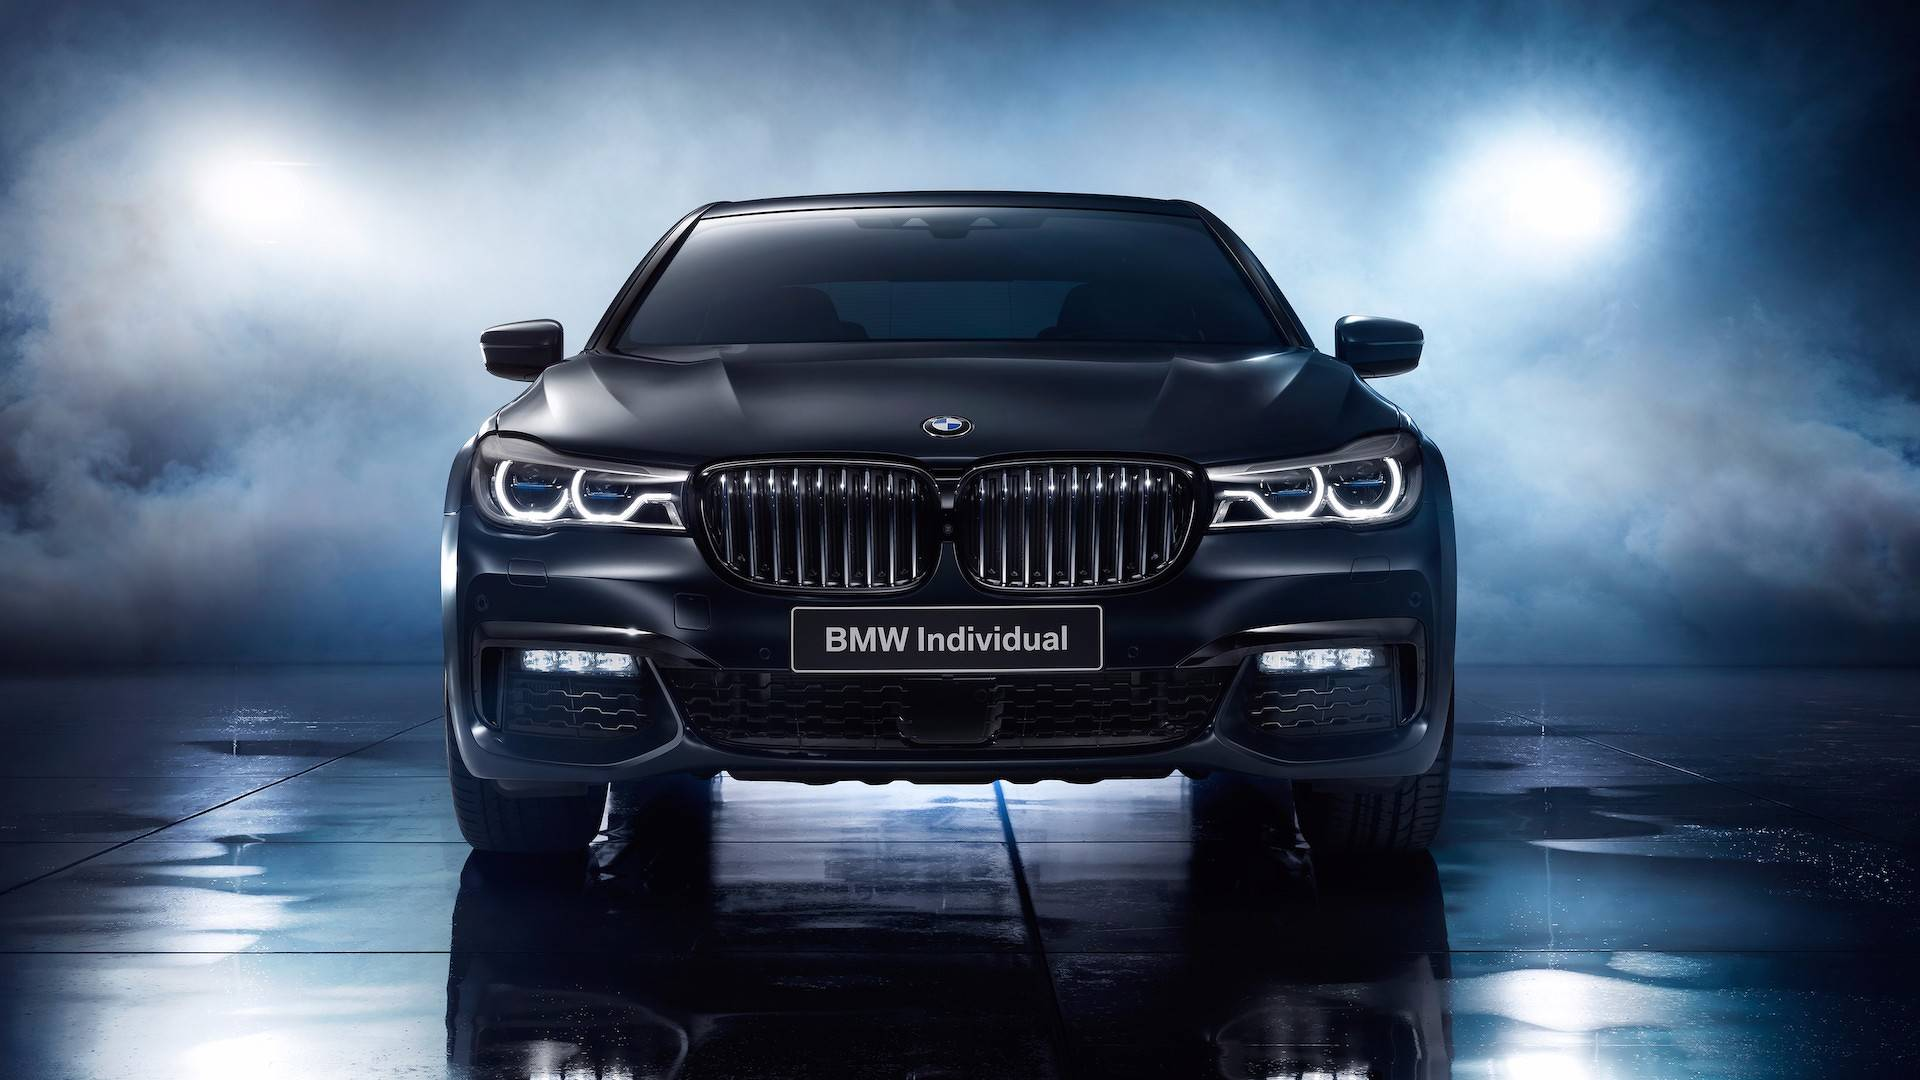 bmw-7-series-individual-edition-black-ice